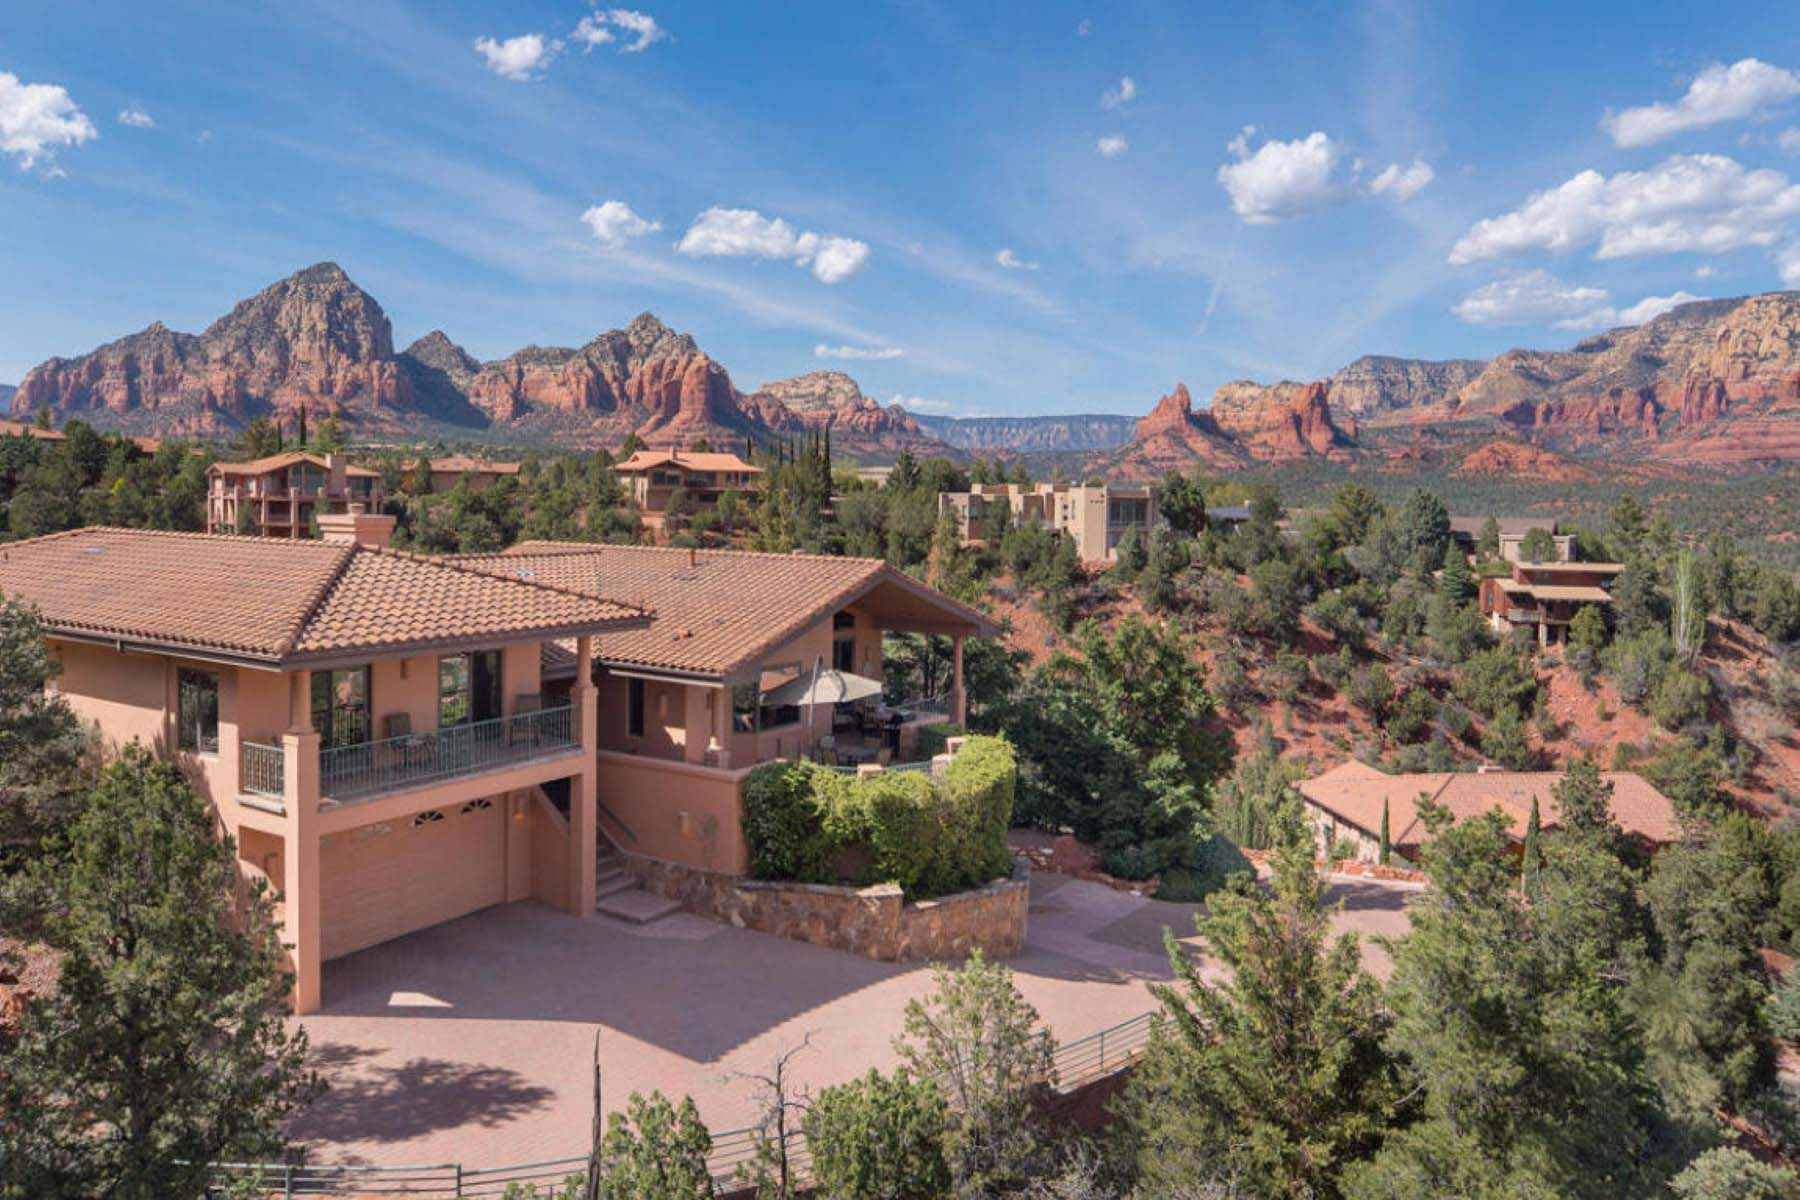 獨棟家庭住宅 為 出售 在 A jaw-dropping setting as high up as one can be in Les Springs. 120 Les Springs Drive Sedona, 亞利桑那州 86336 美國